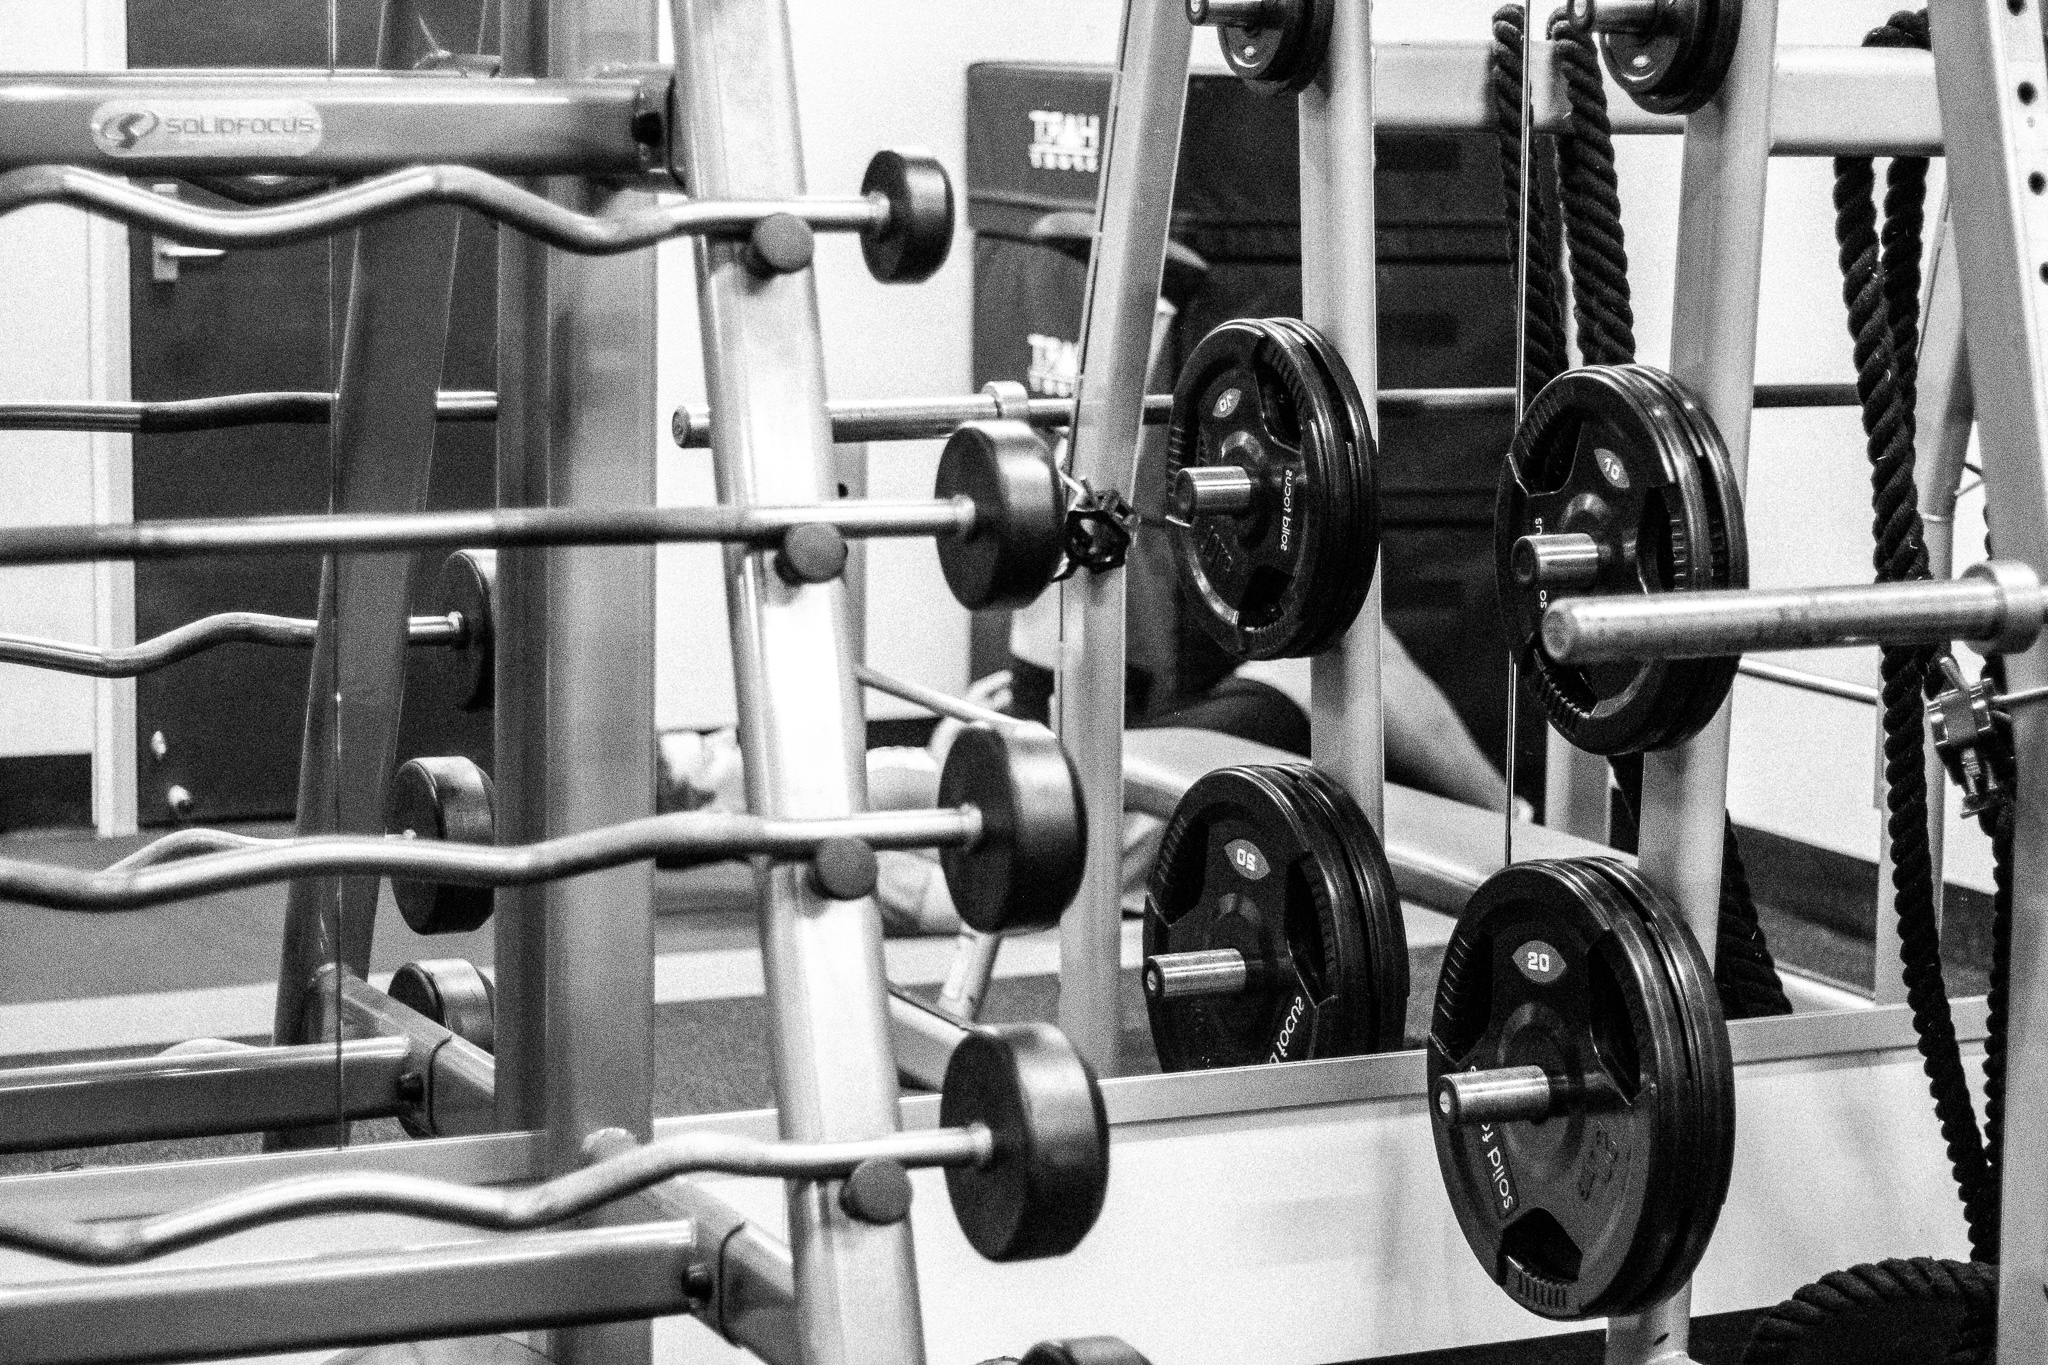 WHAT YOUR GYM TRAINING SHOULD LOOK LIKE